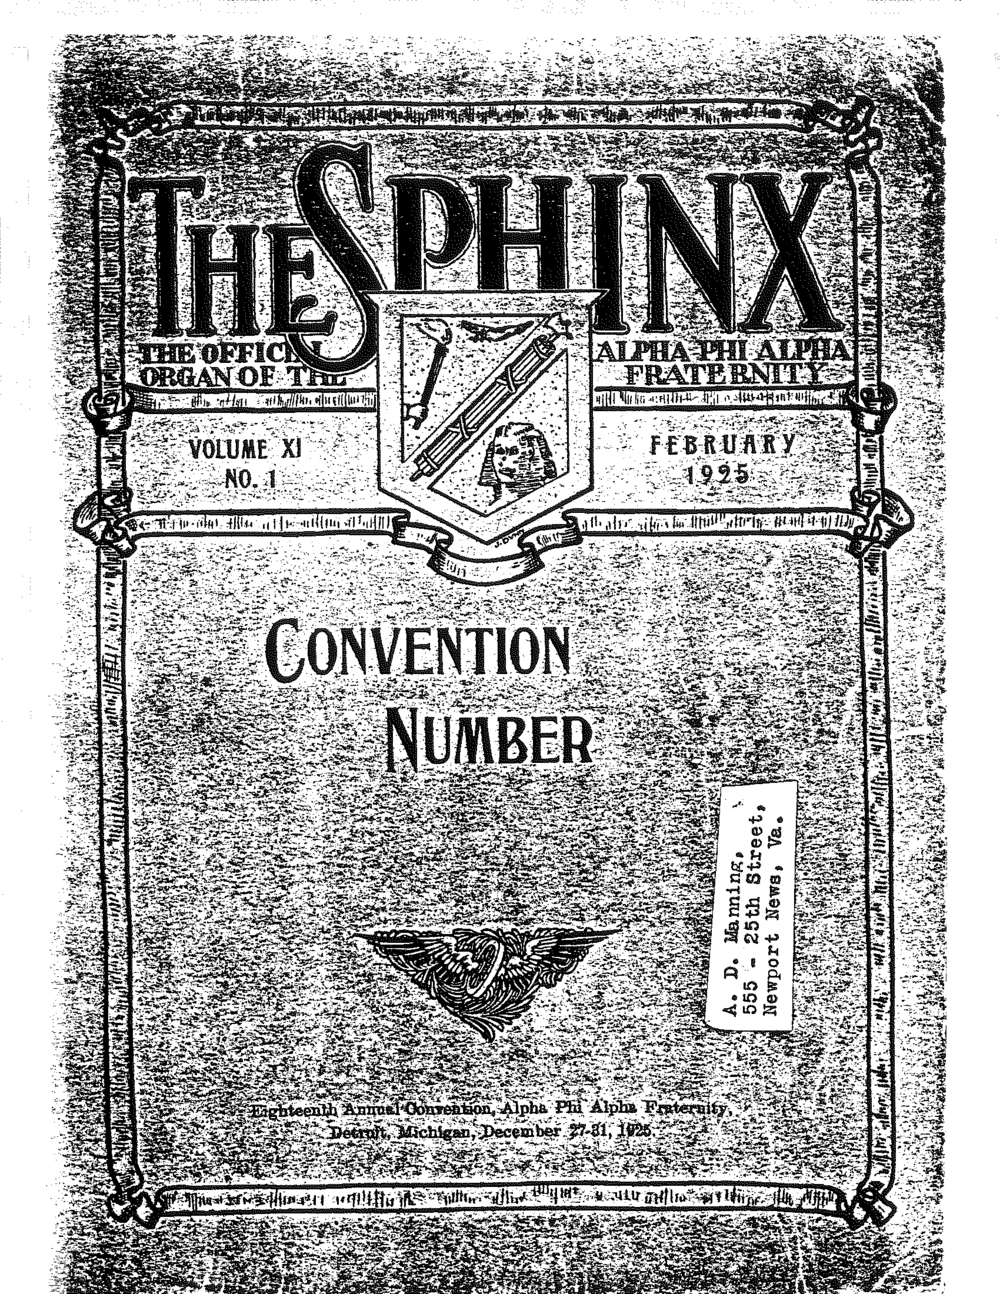 Zeta Lambda 1925 - The Sphinx Cover-1.png